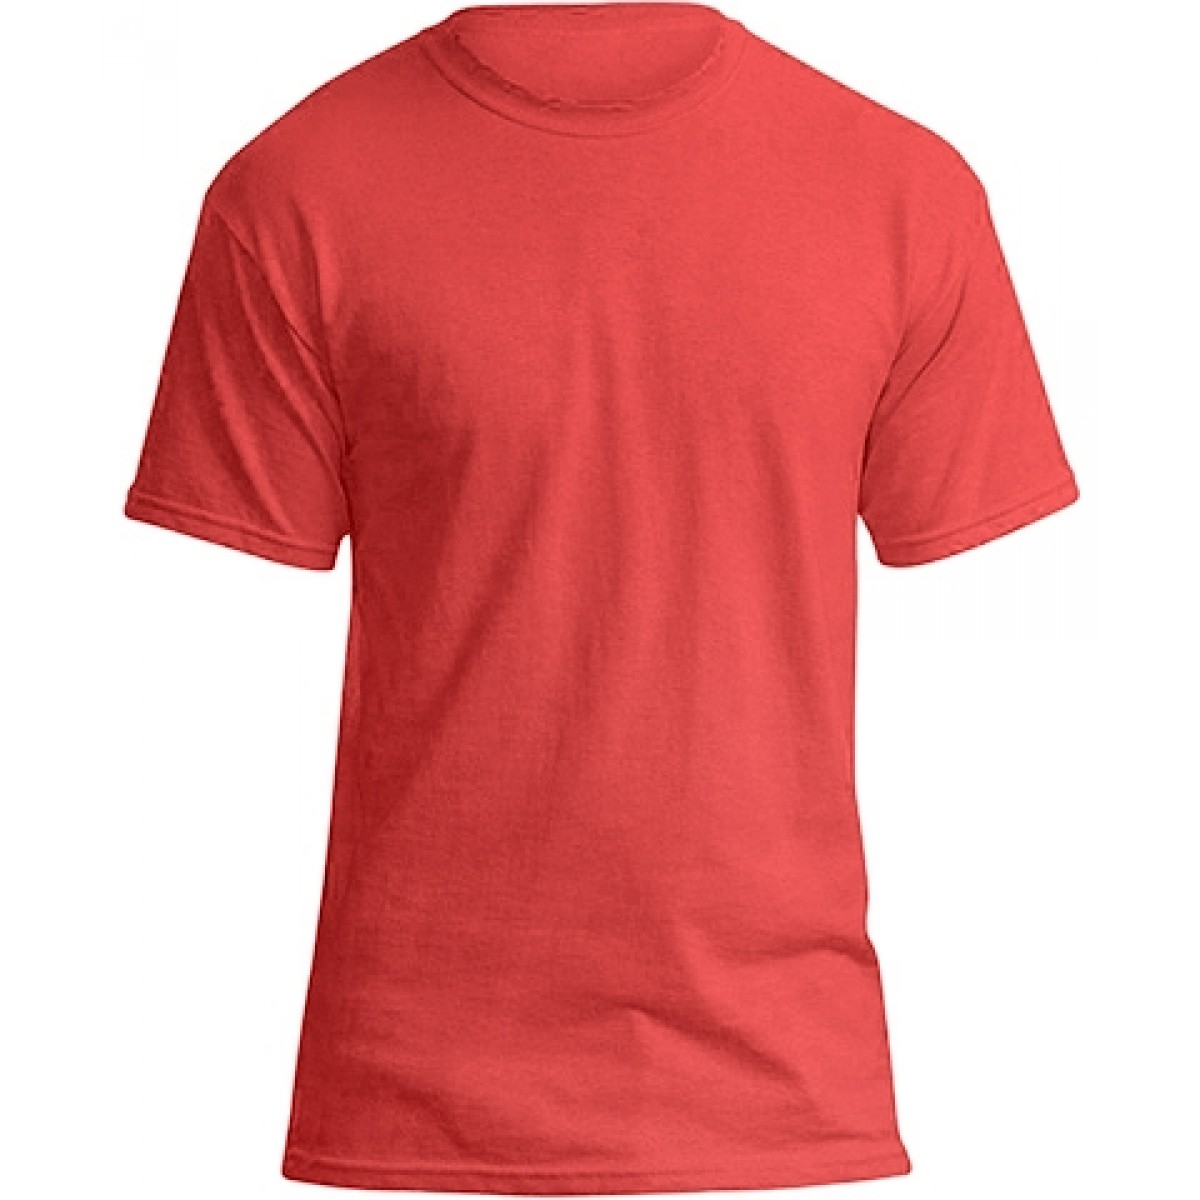 Soft 100% Cotton T-Shirt-Heather Red-L